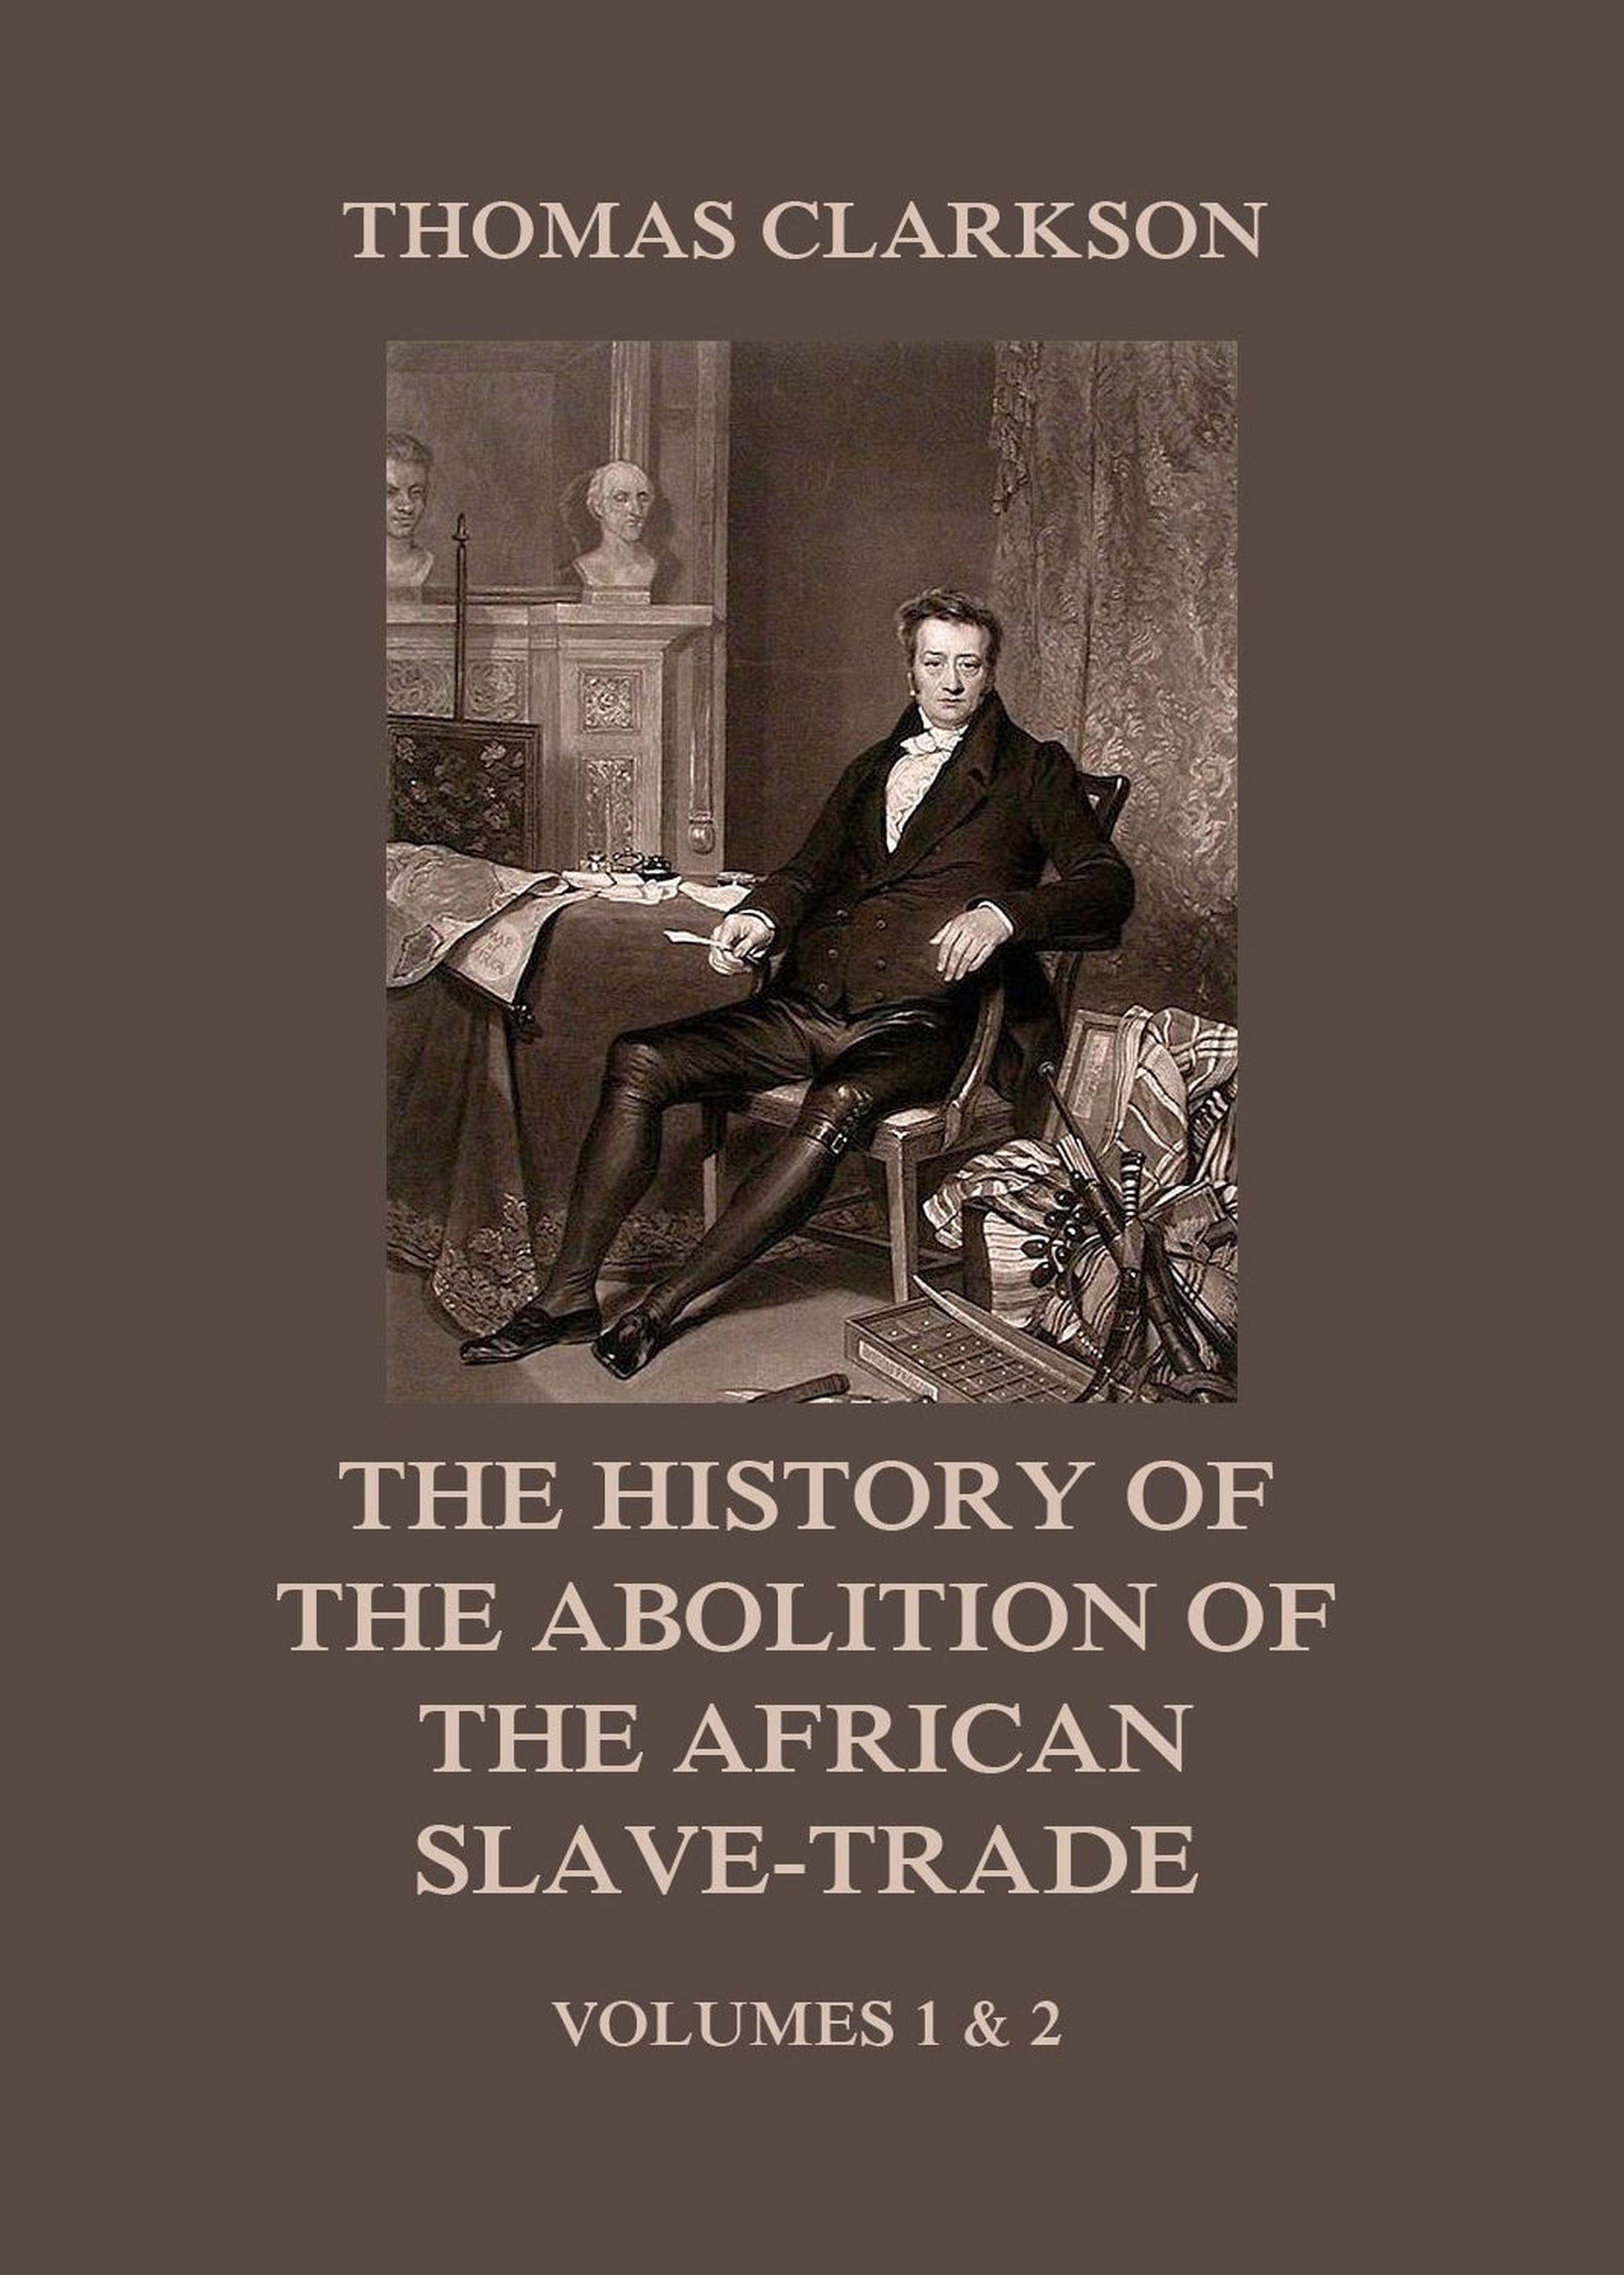 Thomas Clarkson The History of the Abolition of the African Slave-Trade kelly clarkson kelly clarkson meaning of life